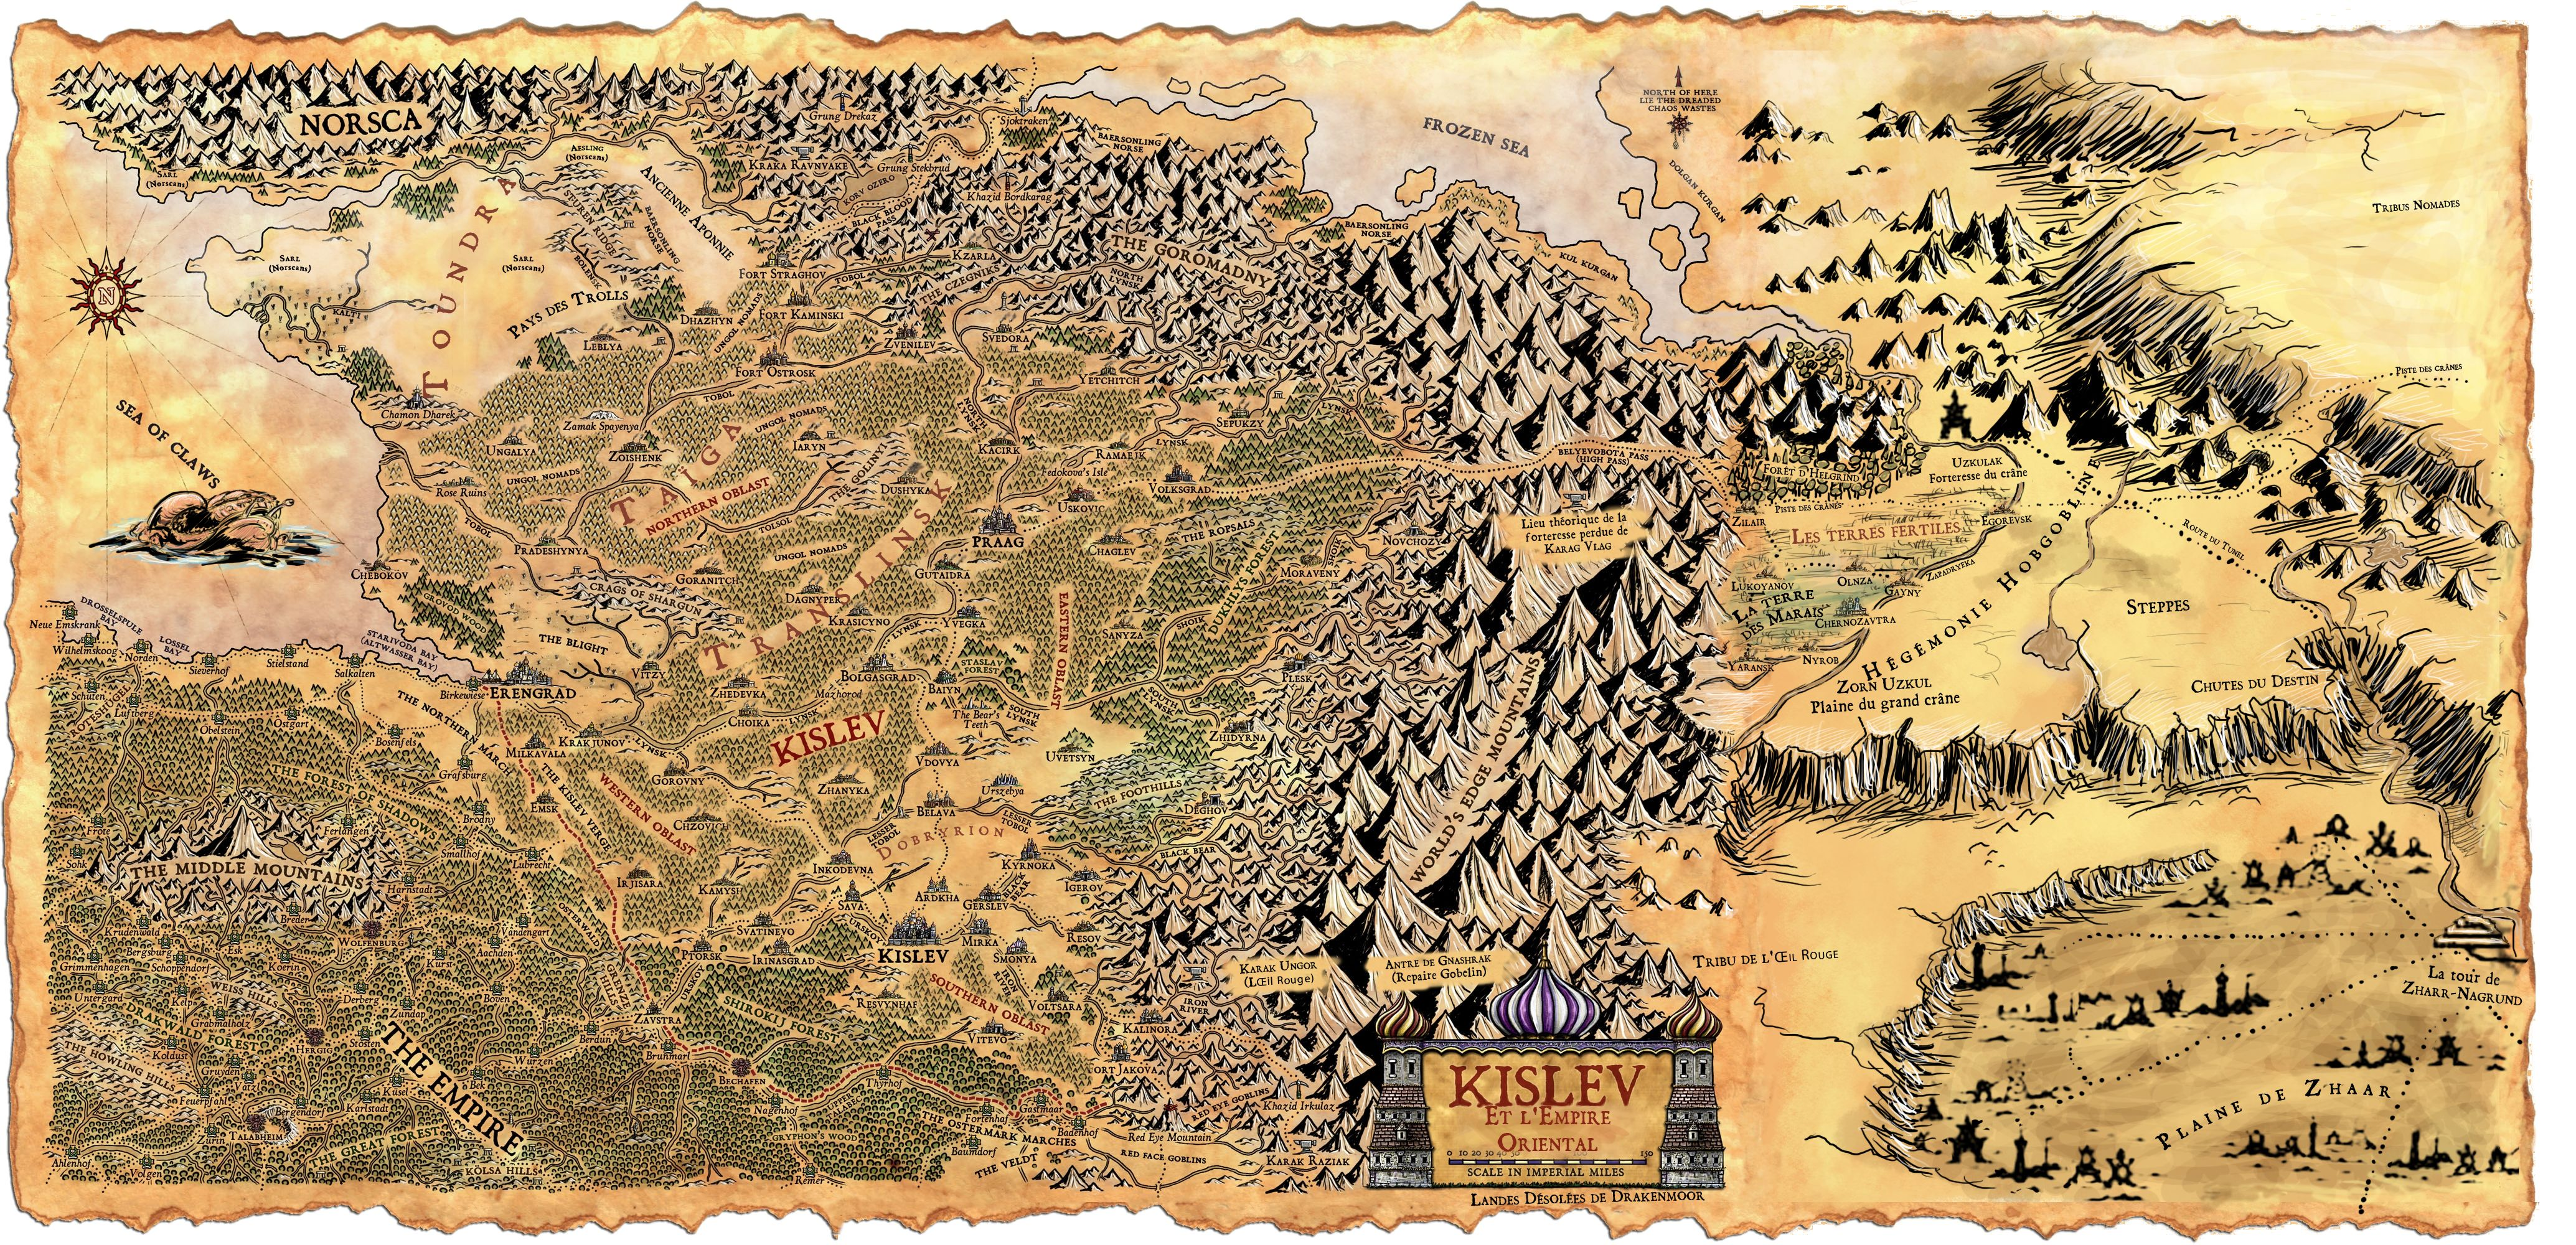 Warhammer Fantasy Land Of Chaos Dwarfs Map Google Suche Warhammer